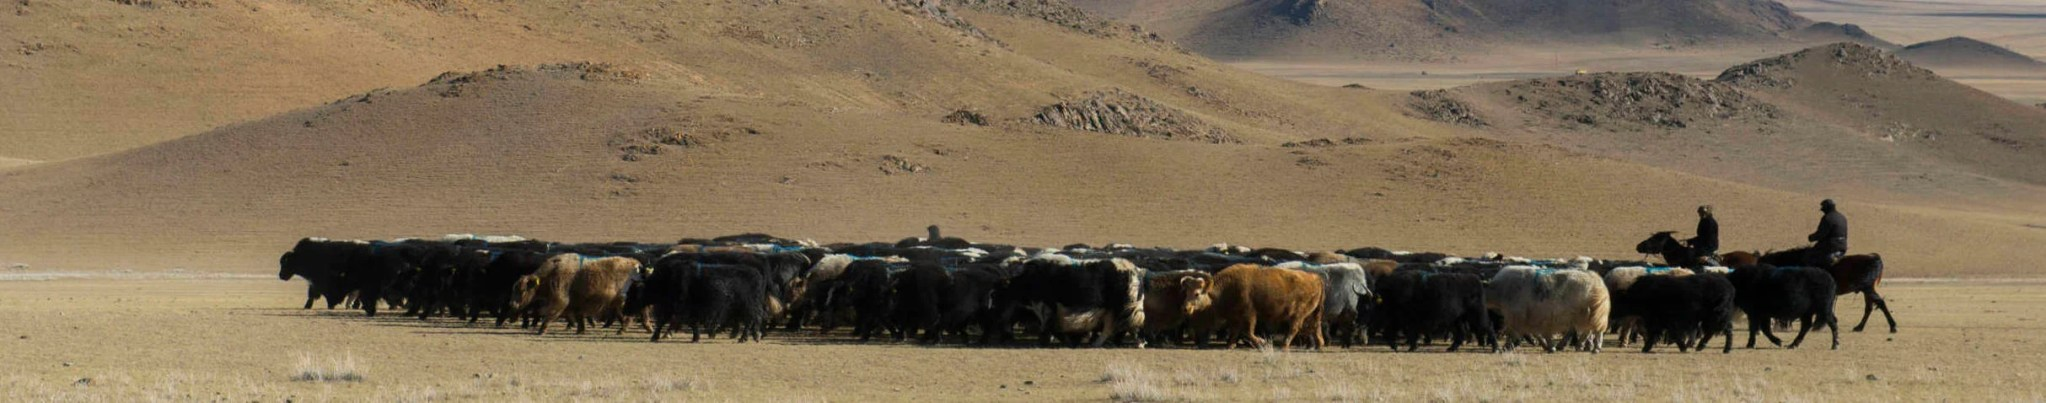 Dreaming of Mongolia: How I'll book my trip after the pandemic